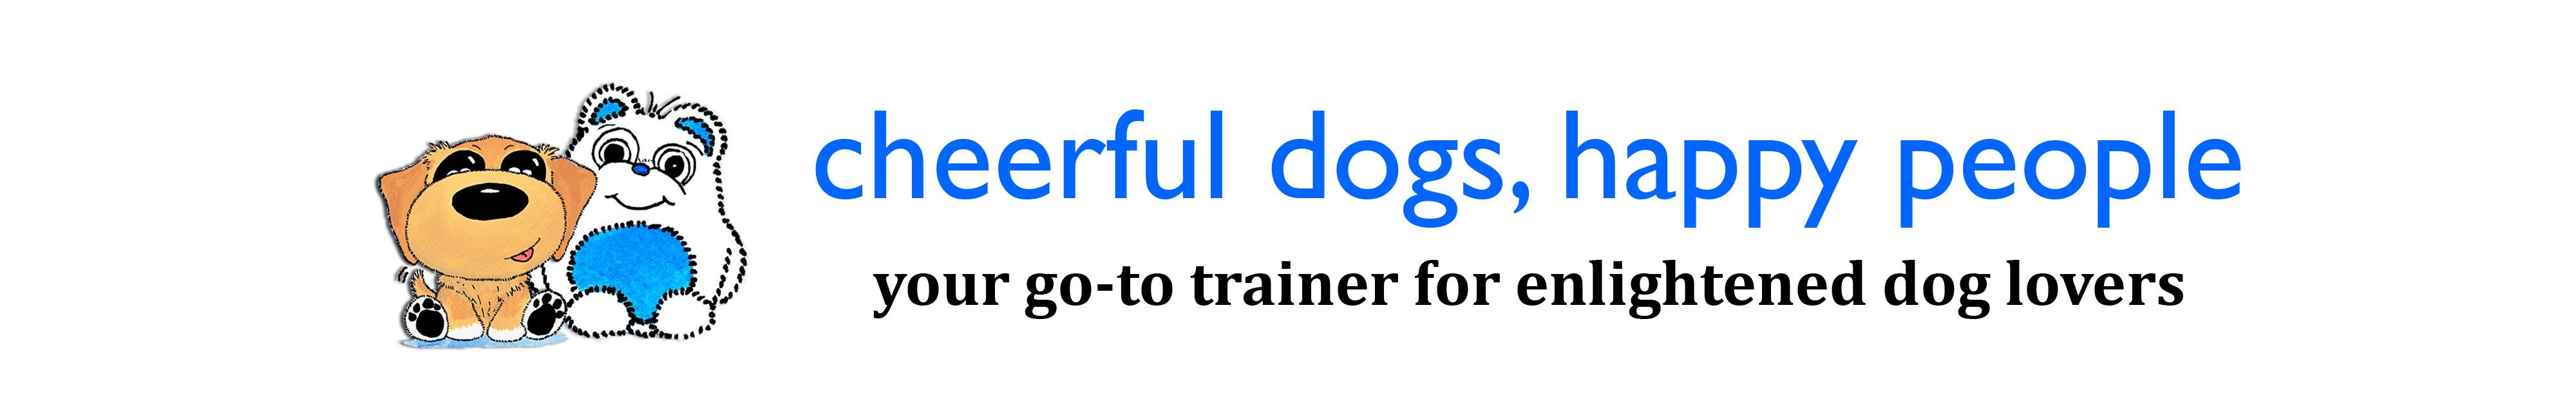 cheerfuldogs.com Singapore